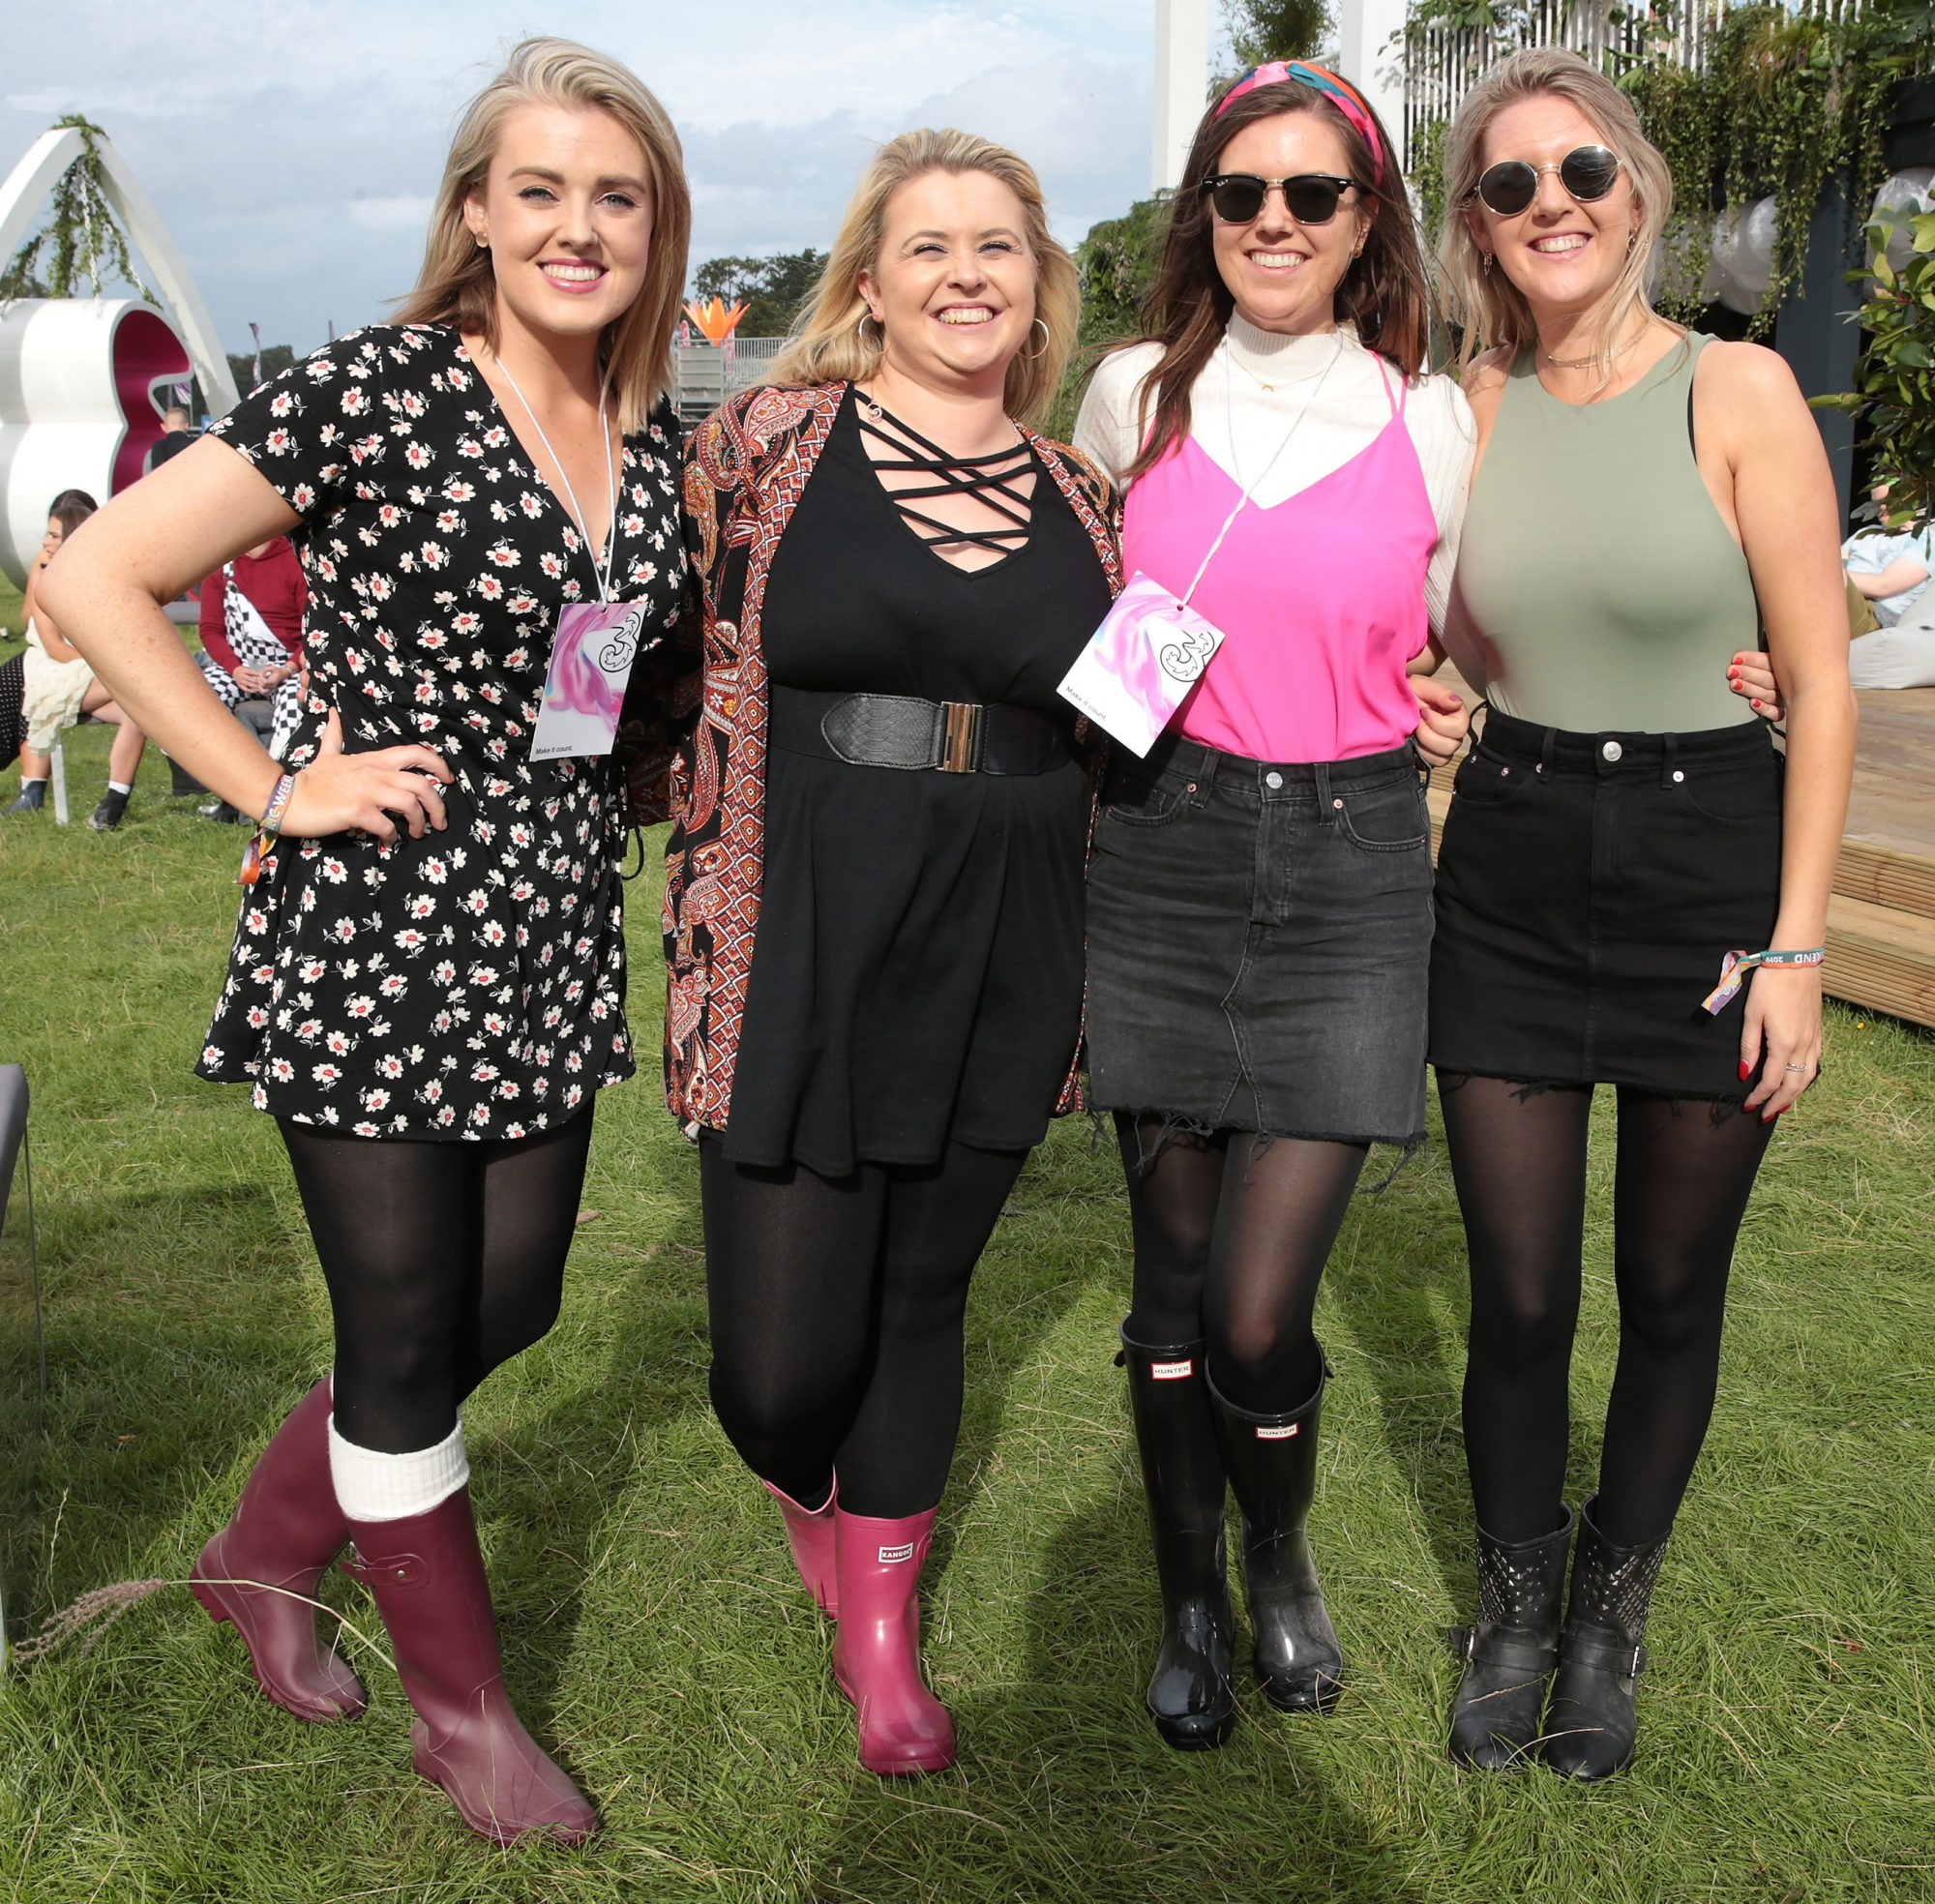 Alison Cox, Elizabeth Keenan, Joanne Campbell and Aisling Buckley at Three's Charge & Chill at Electric Picnic at Stradbally, Co. Laois. 